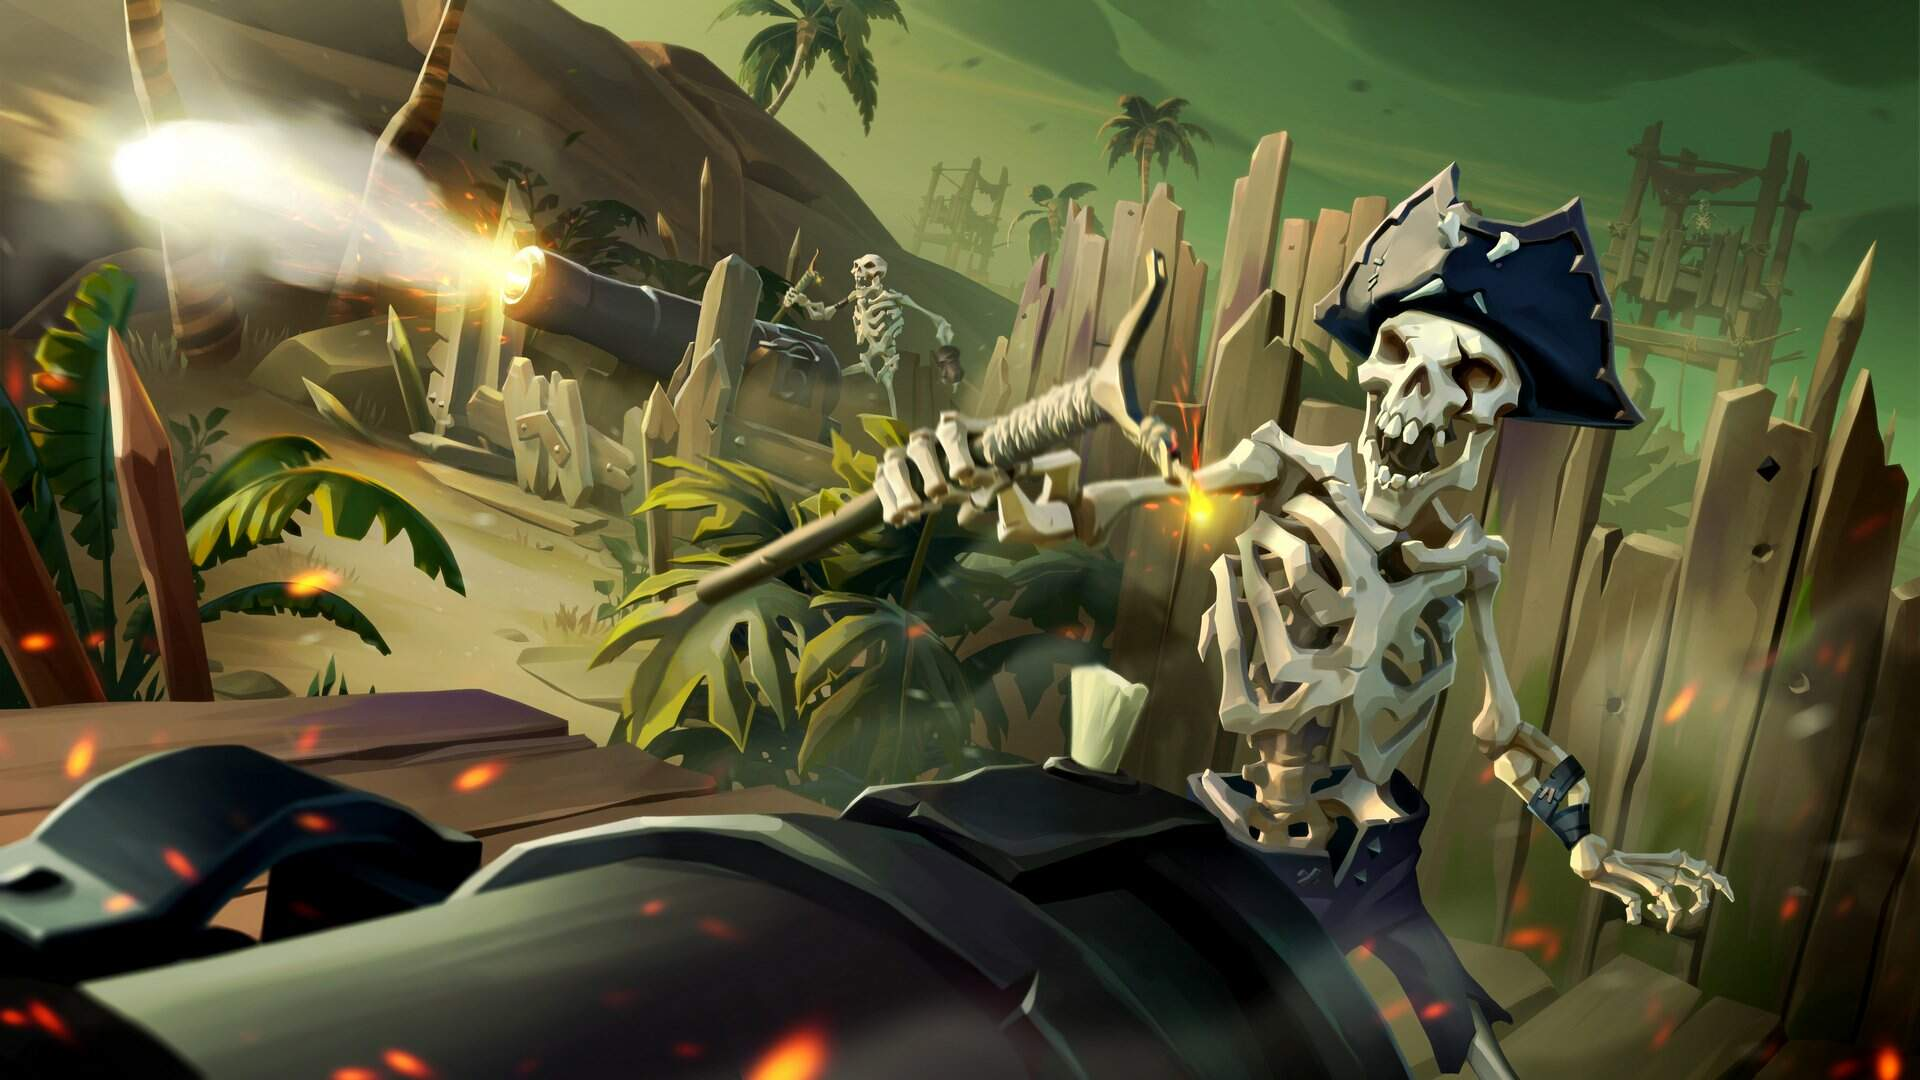 Upcoming Sea of Thieves Update Will Require Players to Download and Reinstall Game From Scratch